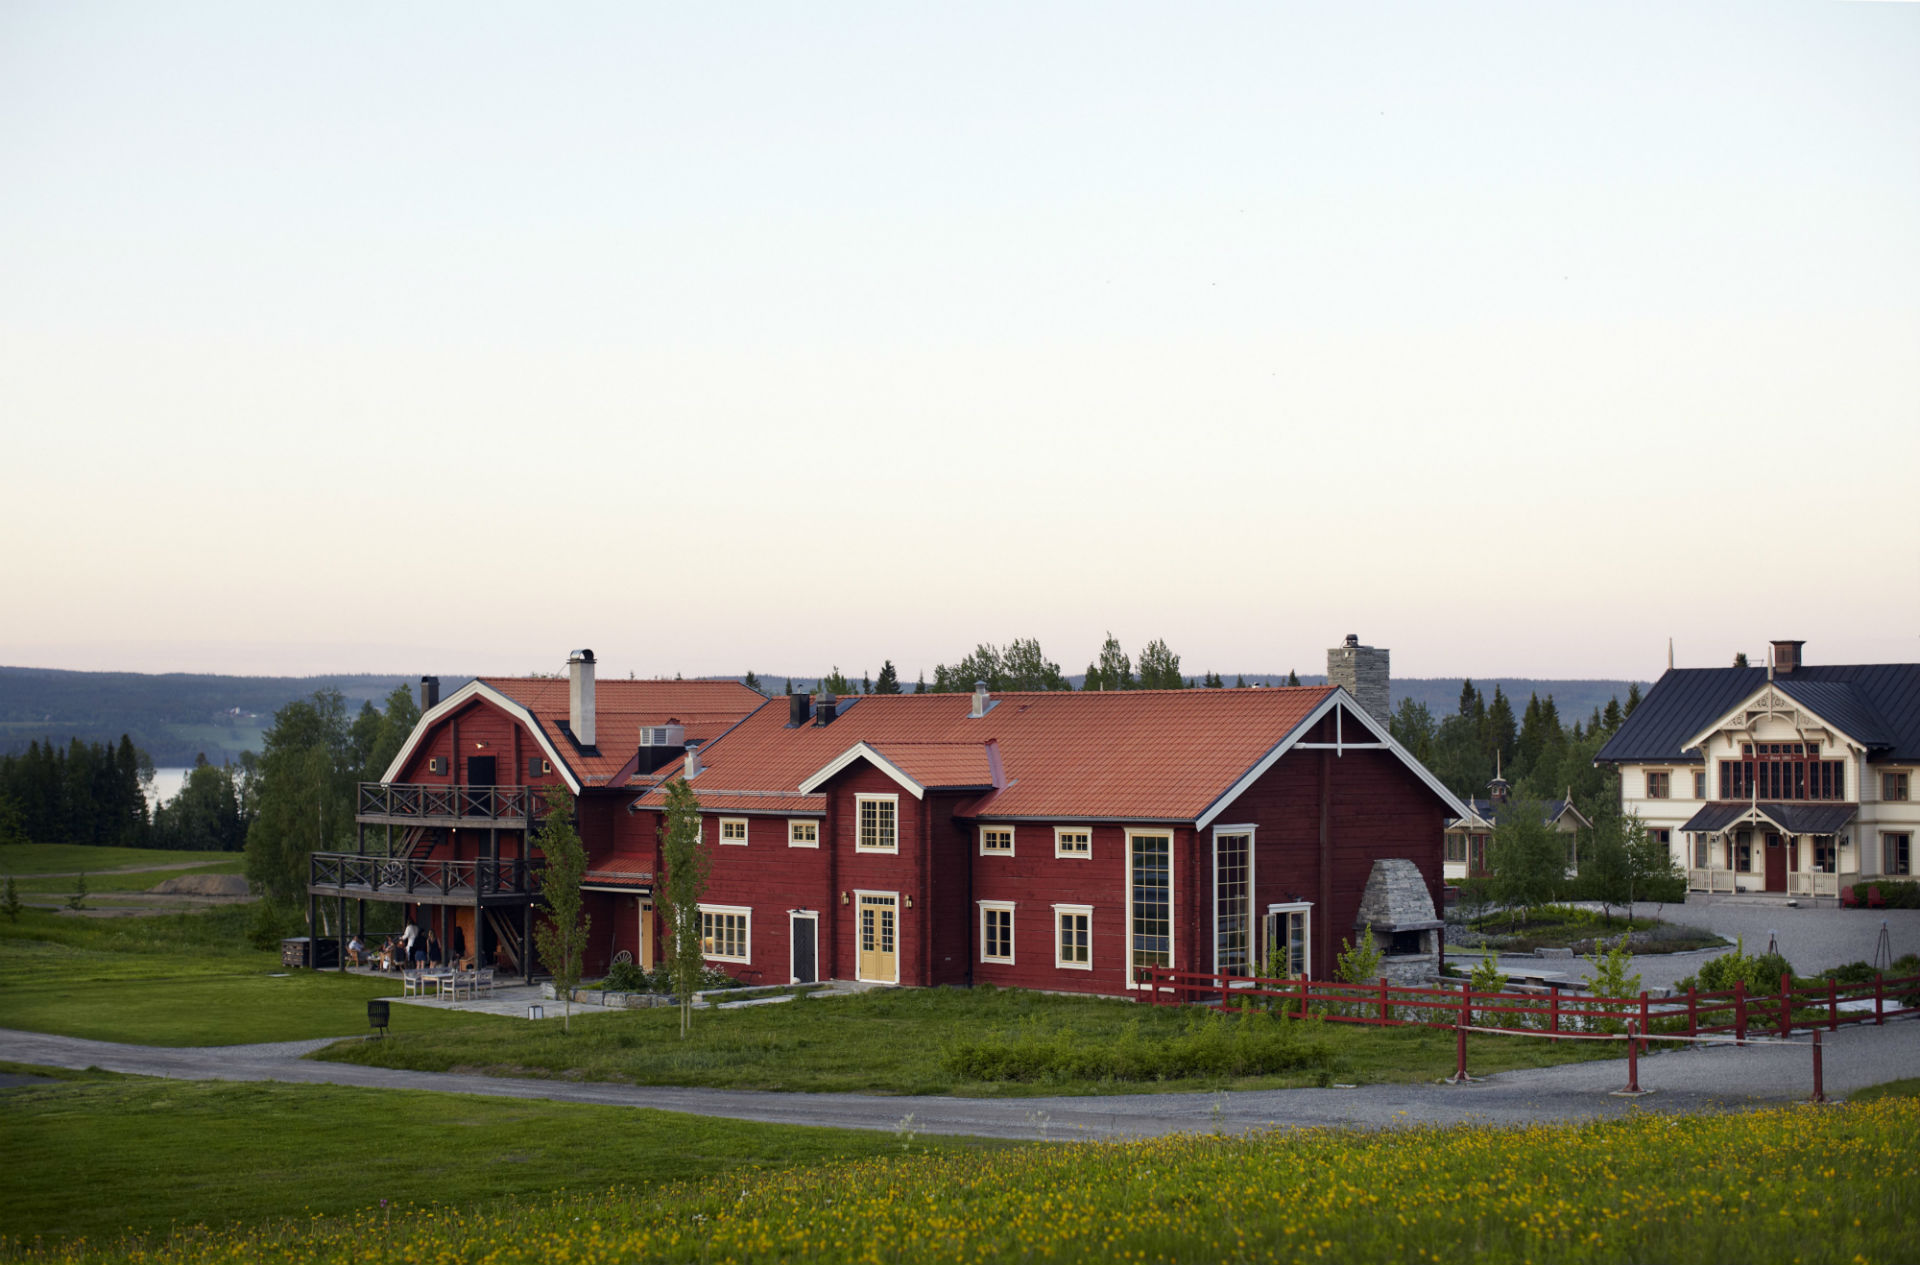 Fäviken Magasinet in Järpen, Jämtland